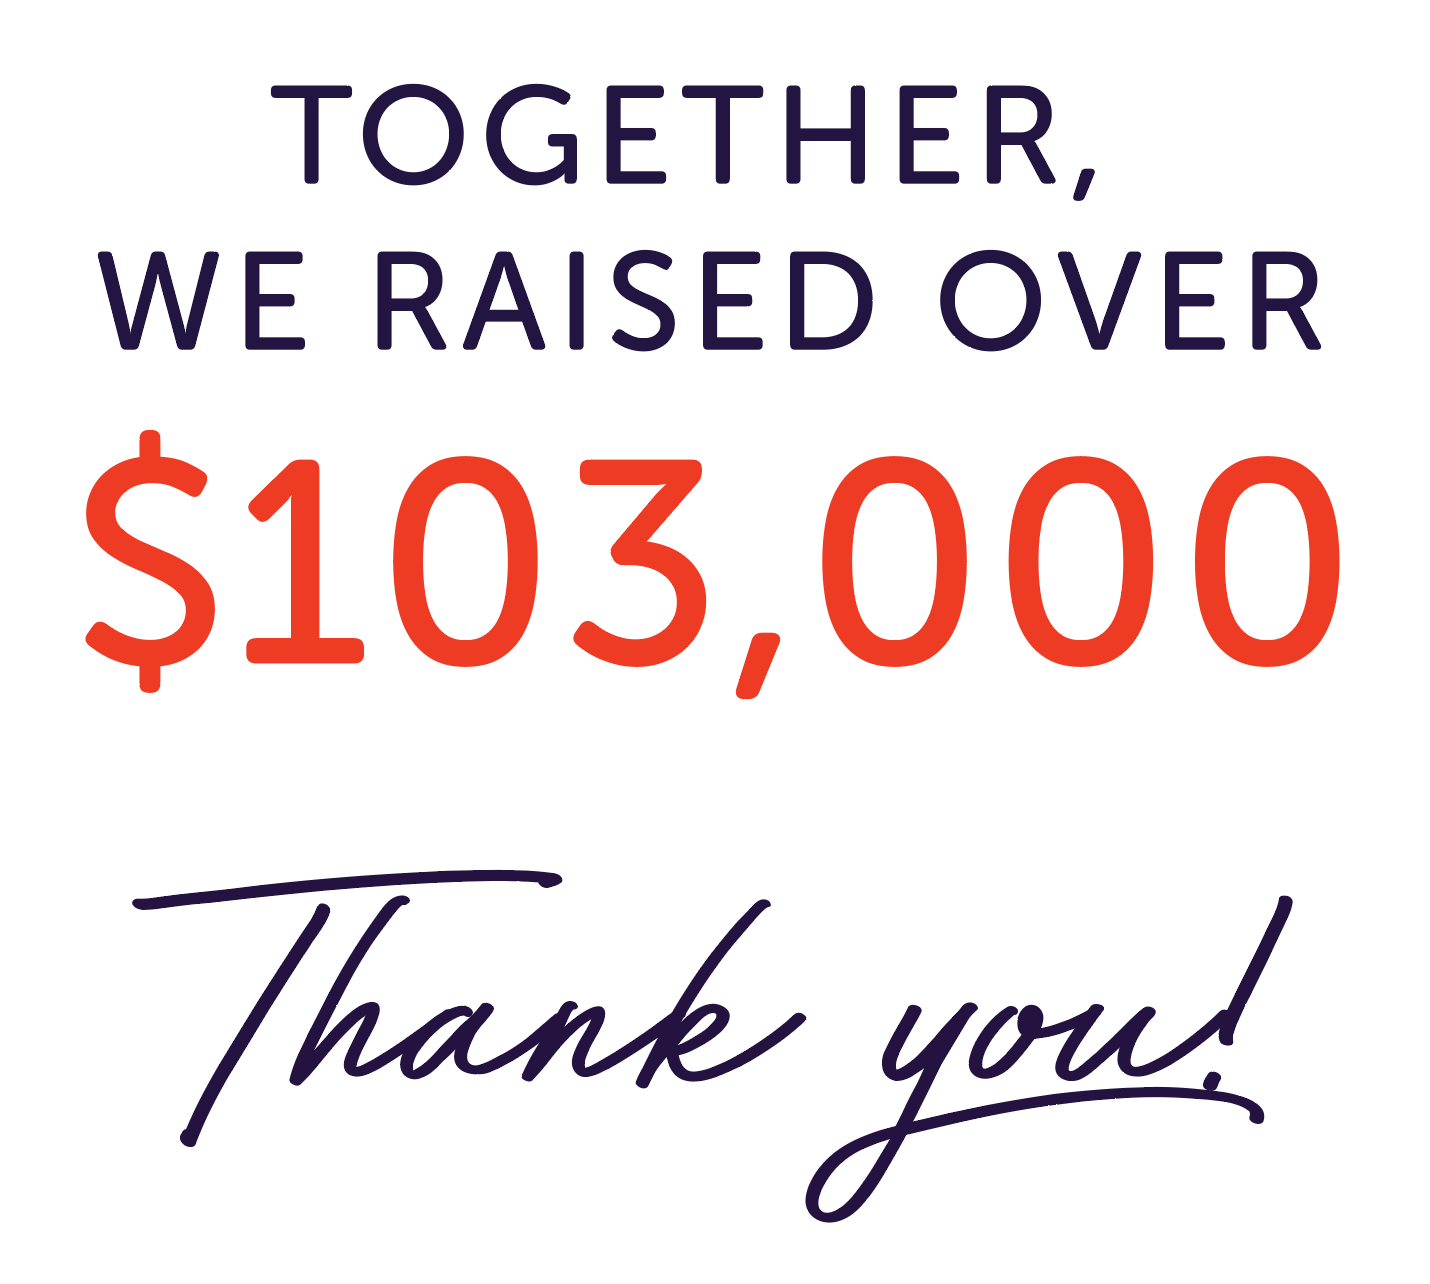 TOGETHER, WE RAISED OVER $103,000! THANK YOU!